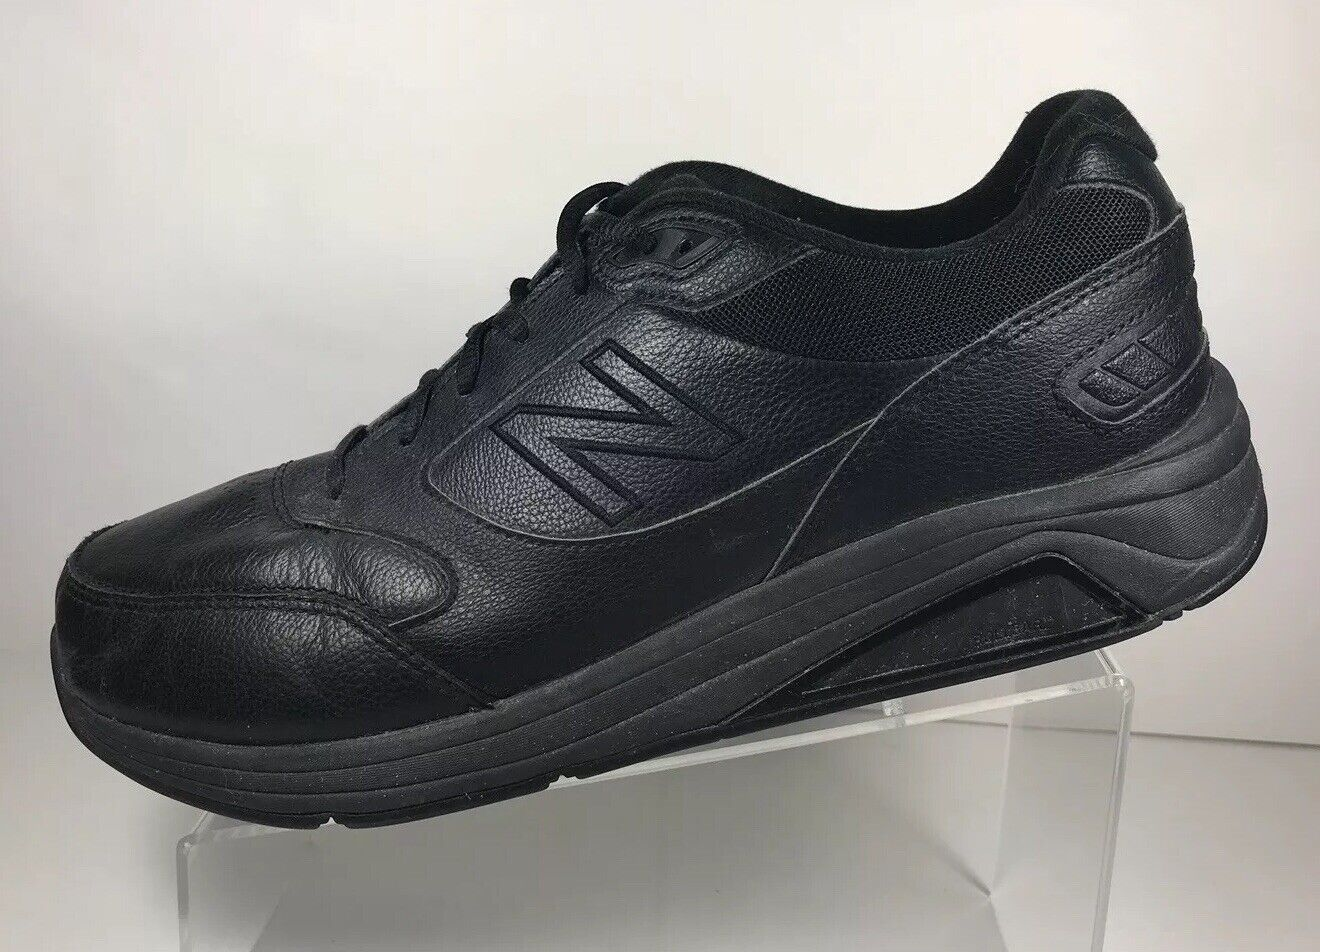 New Balance 928v3 - Walking Motion Control Leather Sneakers Men's 10.5 4E Black